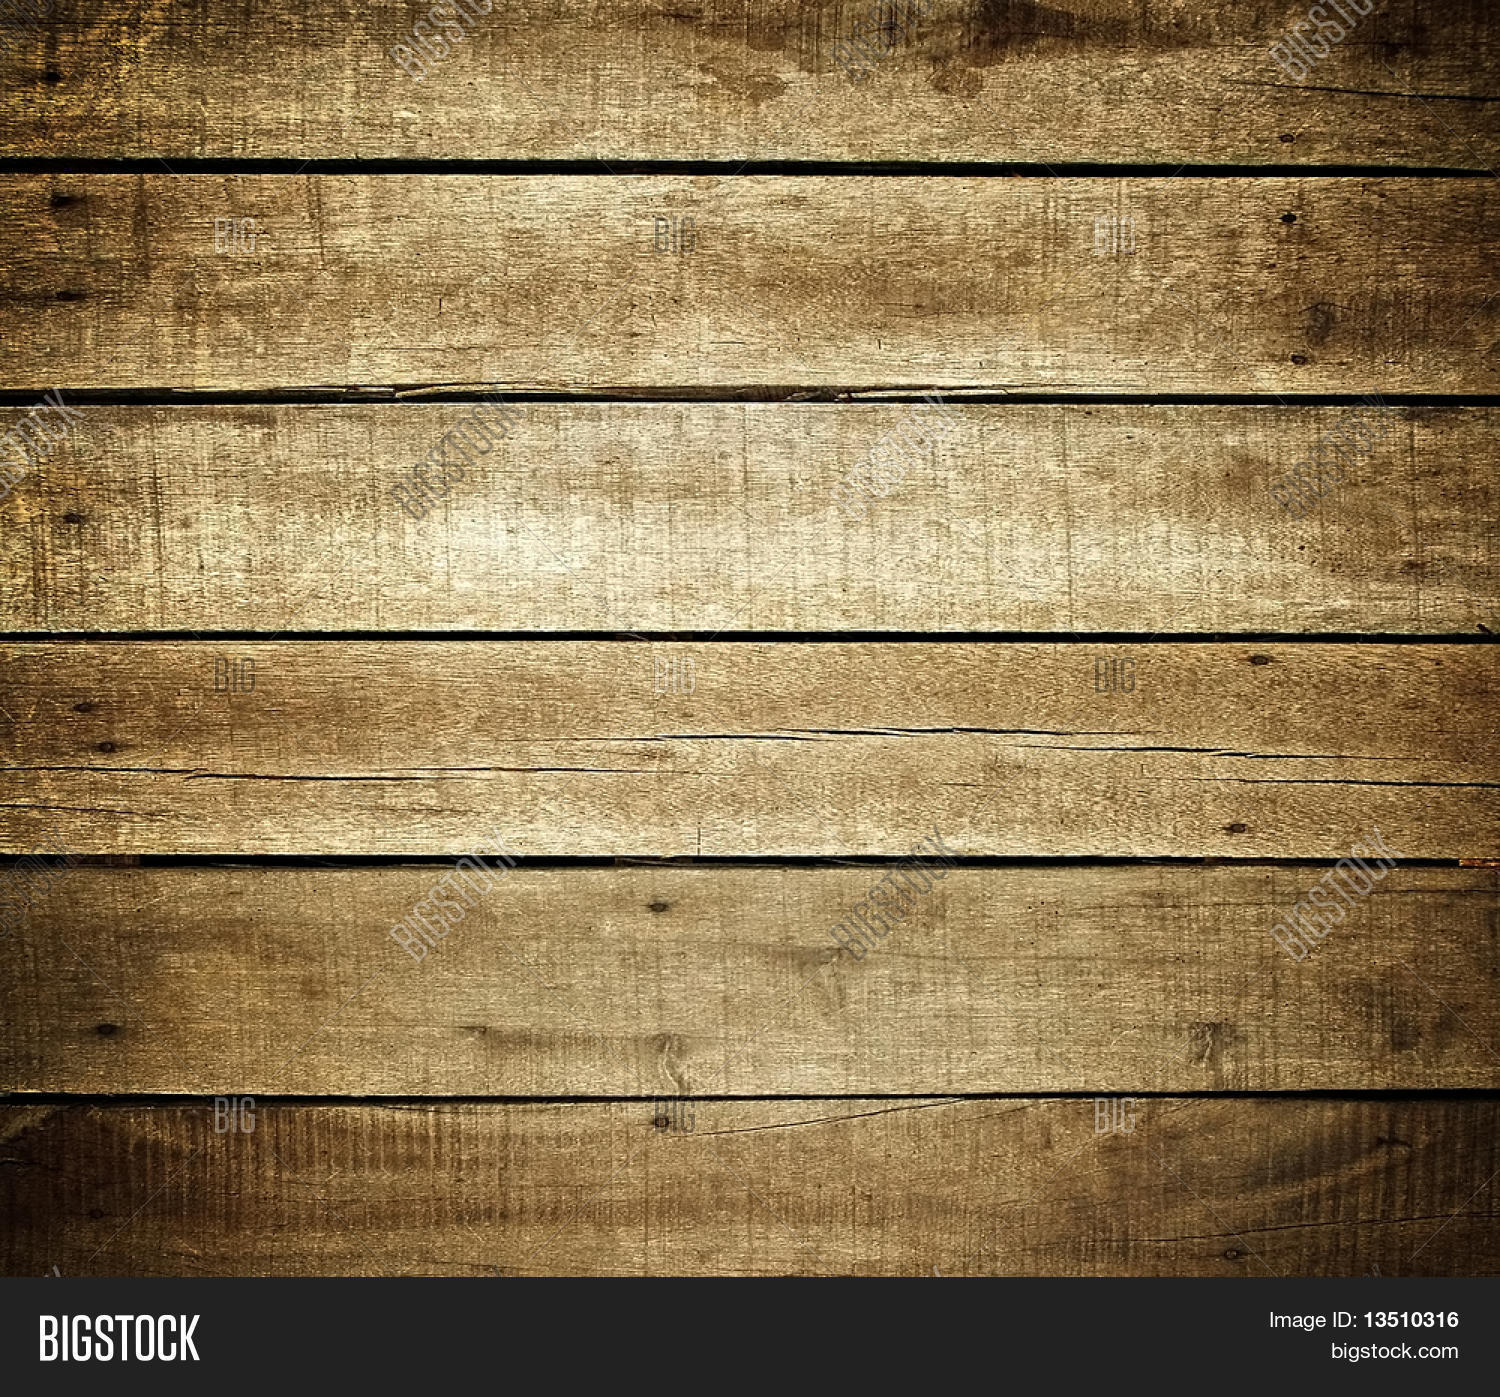 Wood Plank Background ~ Wood plank background stock photo images bigstock